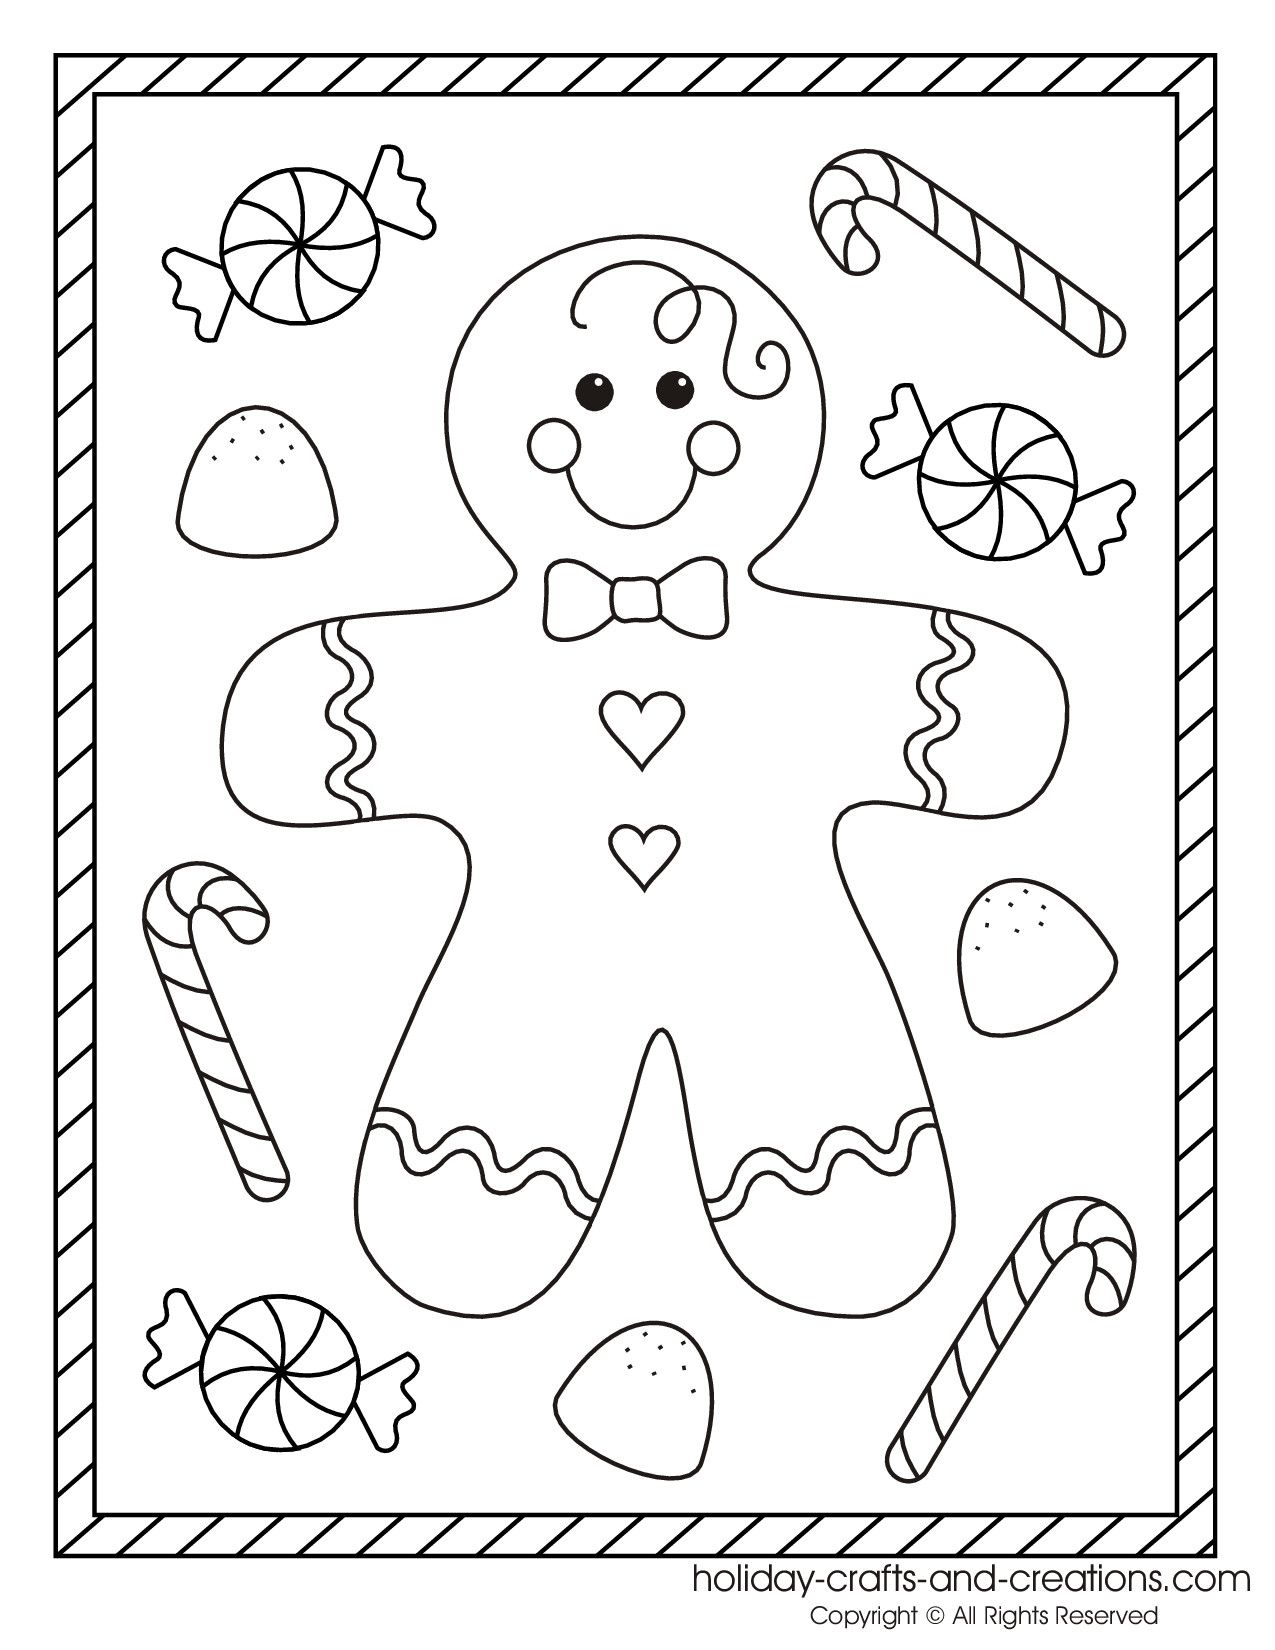 Tibiscuit Colorier Christmas Pinterest Gingerbread Crafts